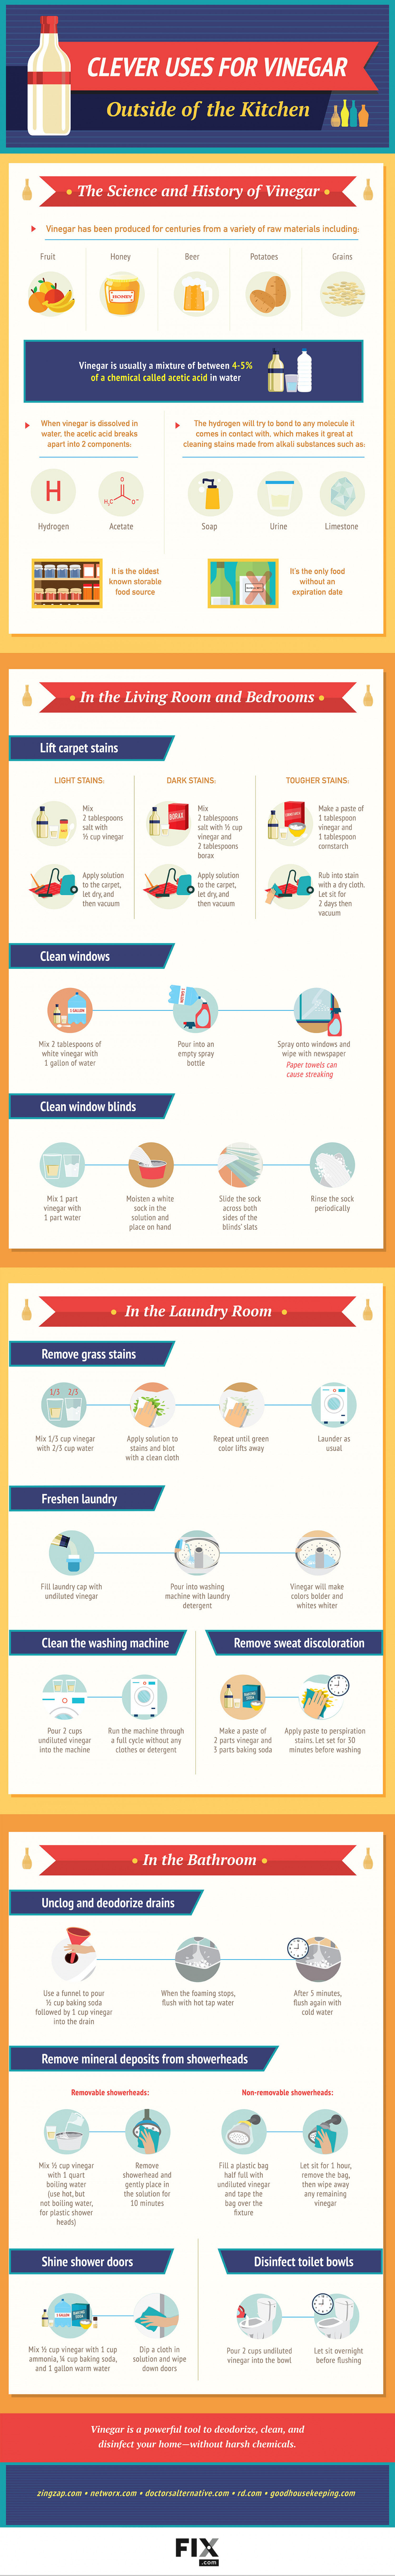 Clever Uses for Vinegar Outside of the Kitchen Infographic